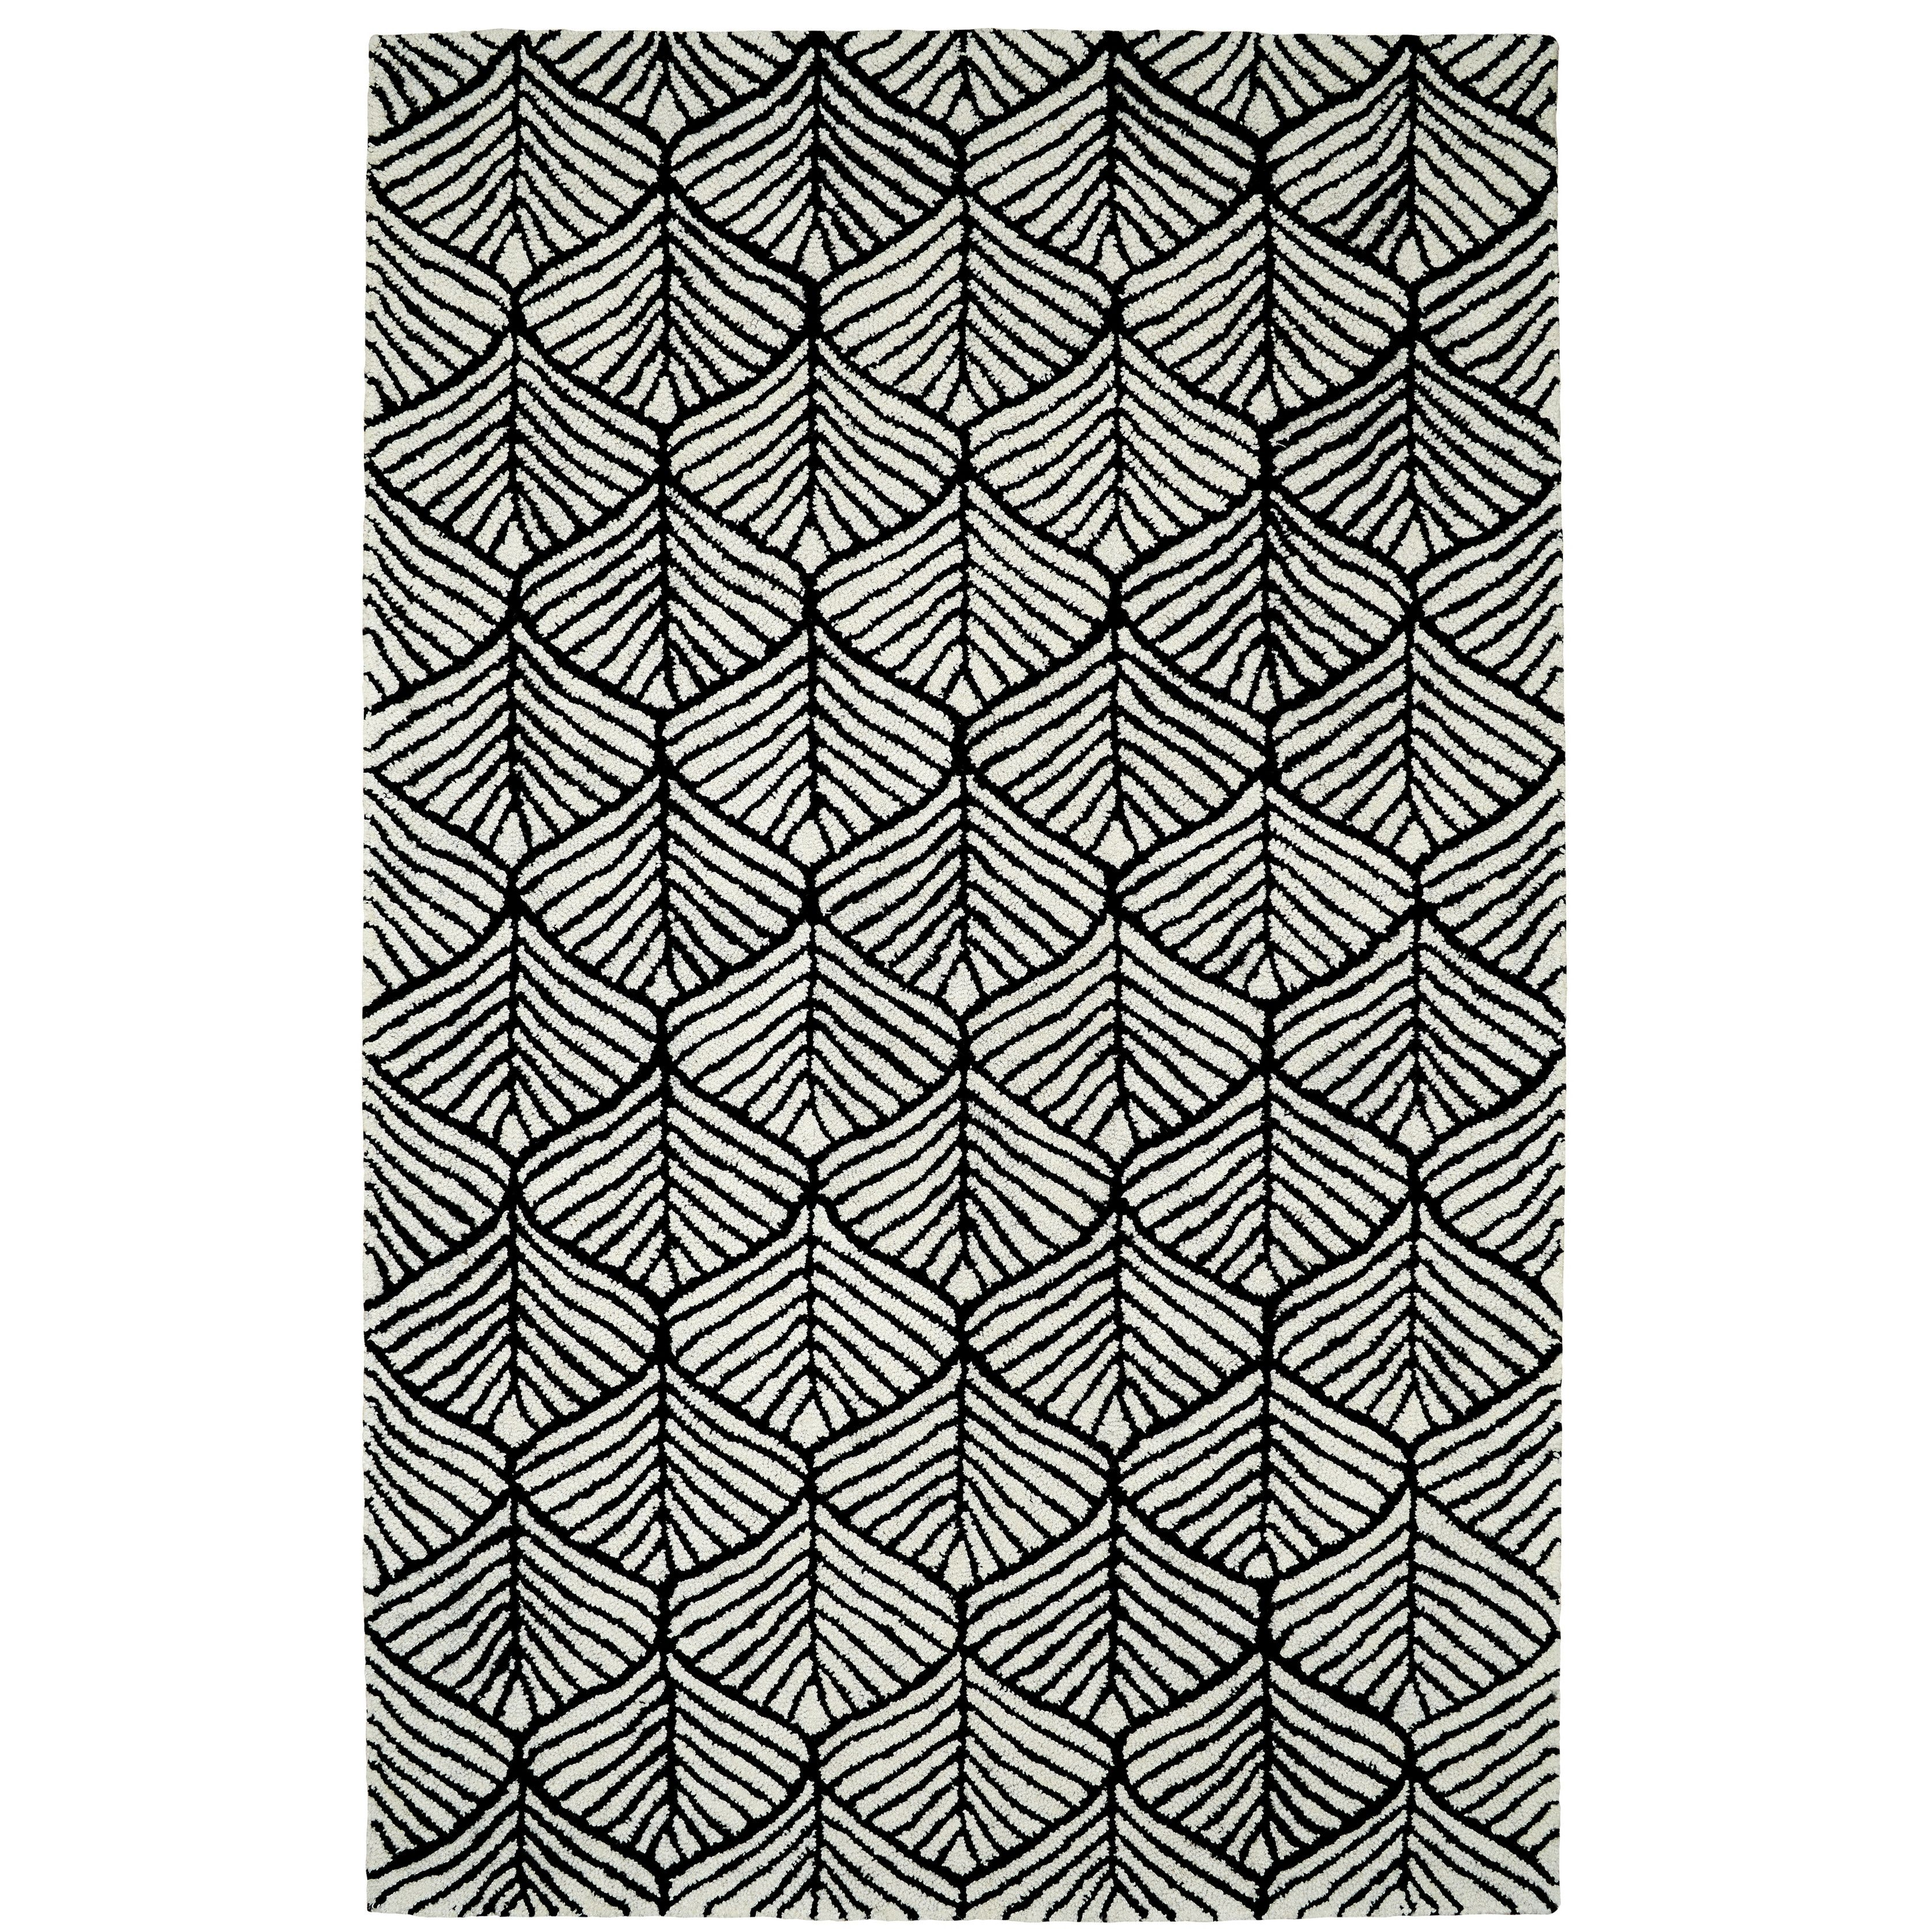 Dynamic Rugs Palace Black White Geometric Area Rug Reviews Allmodern Dynamic Rugs Geometric Area Rug Affordable Area Rugs